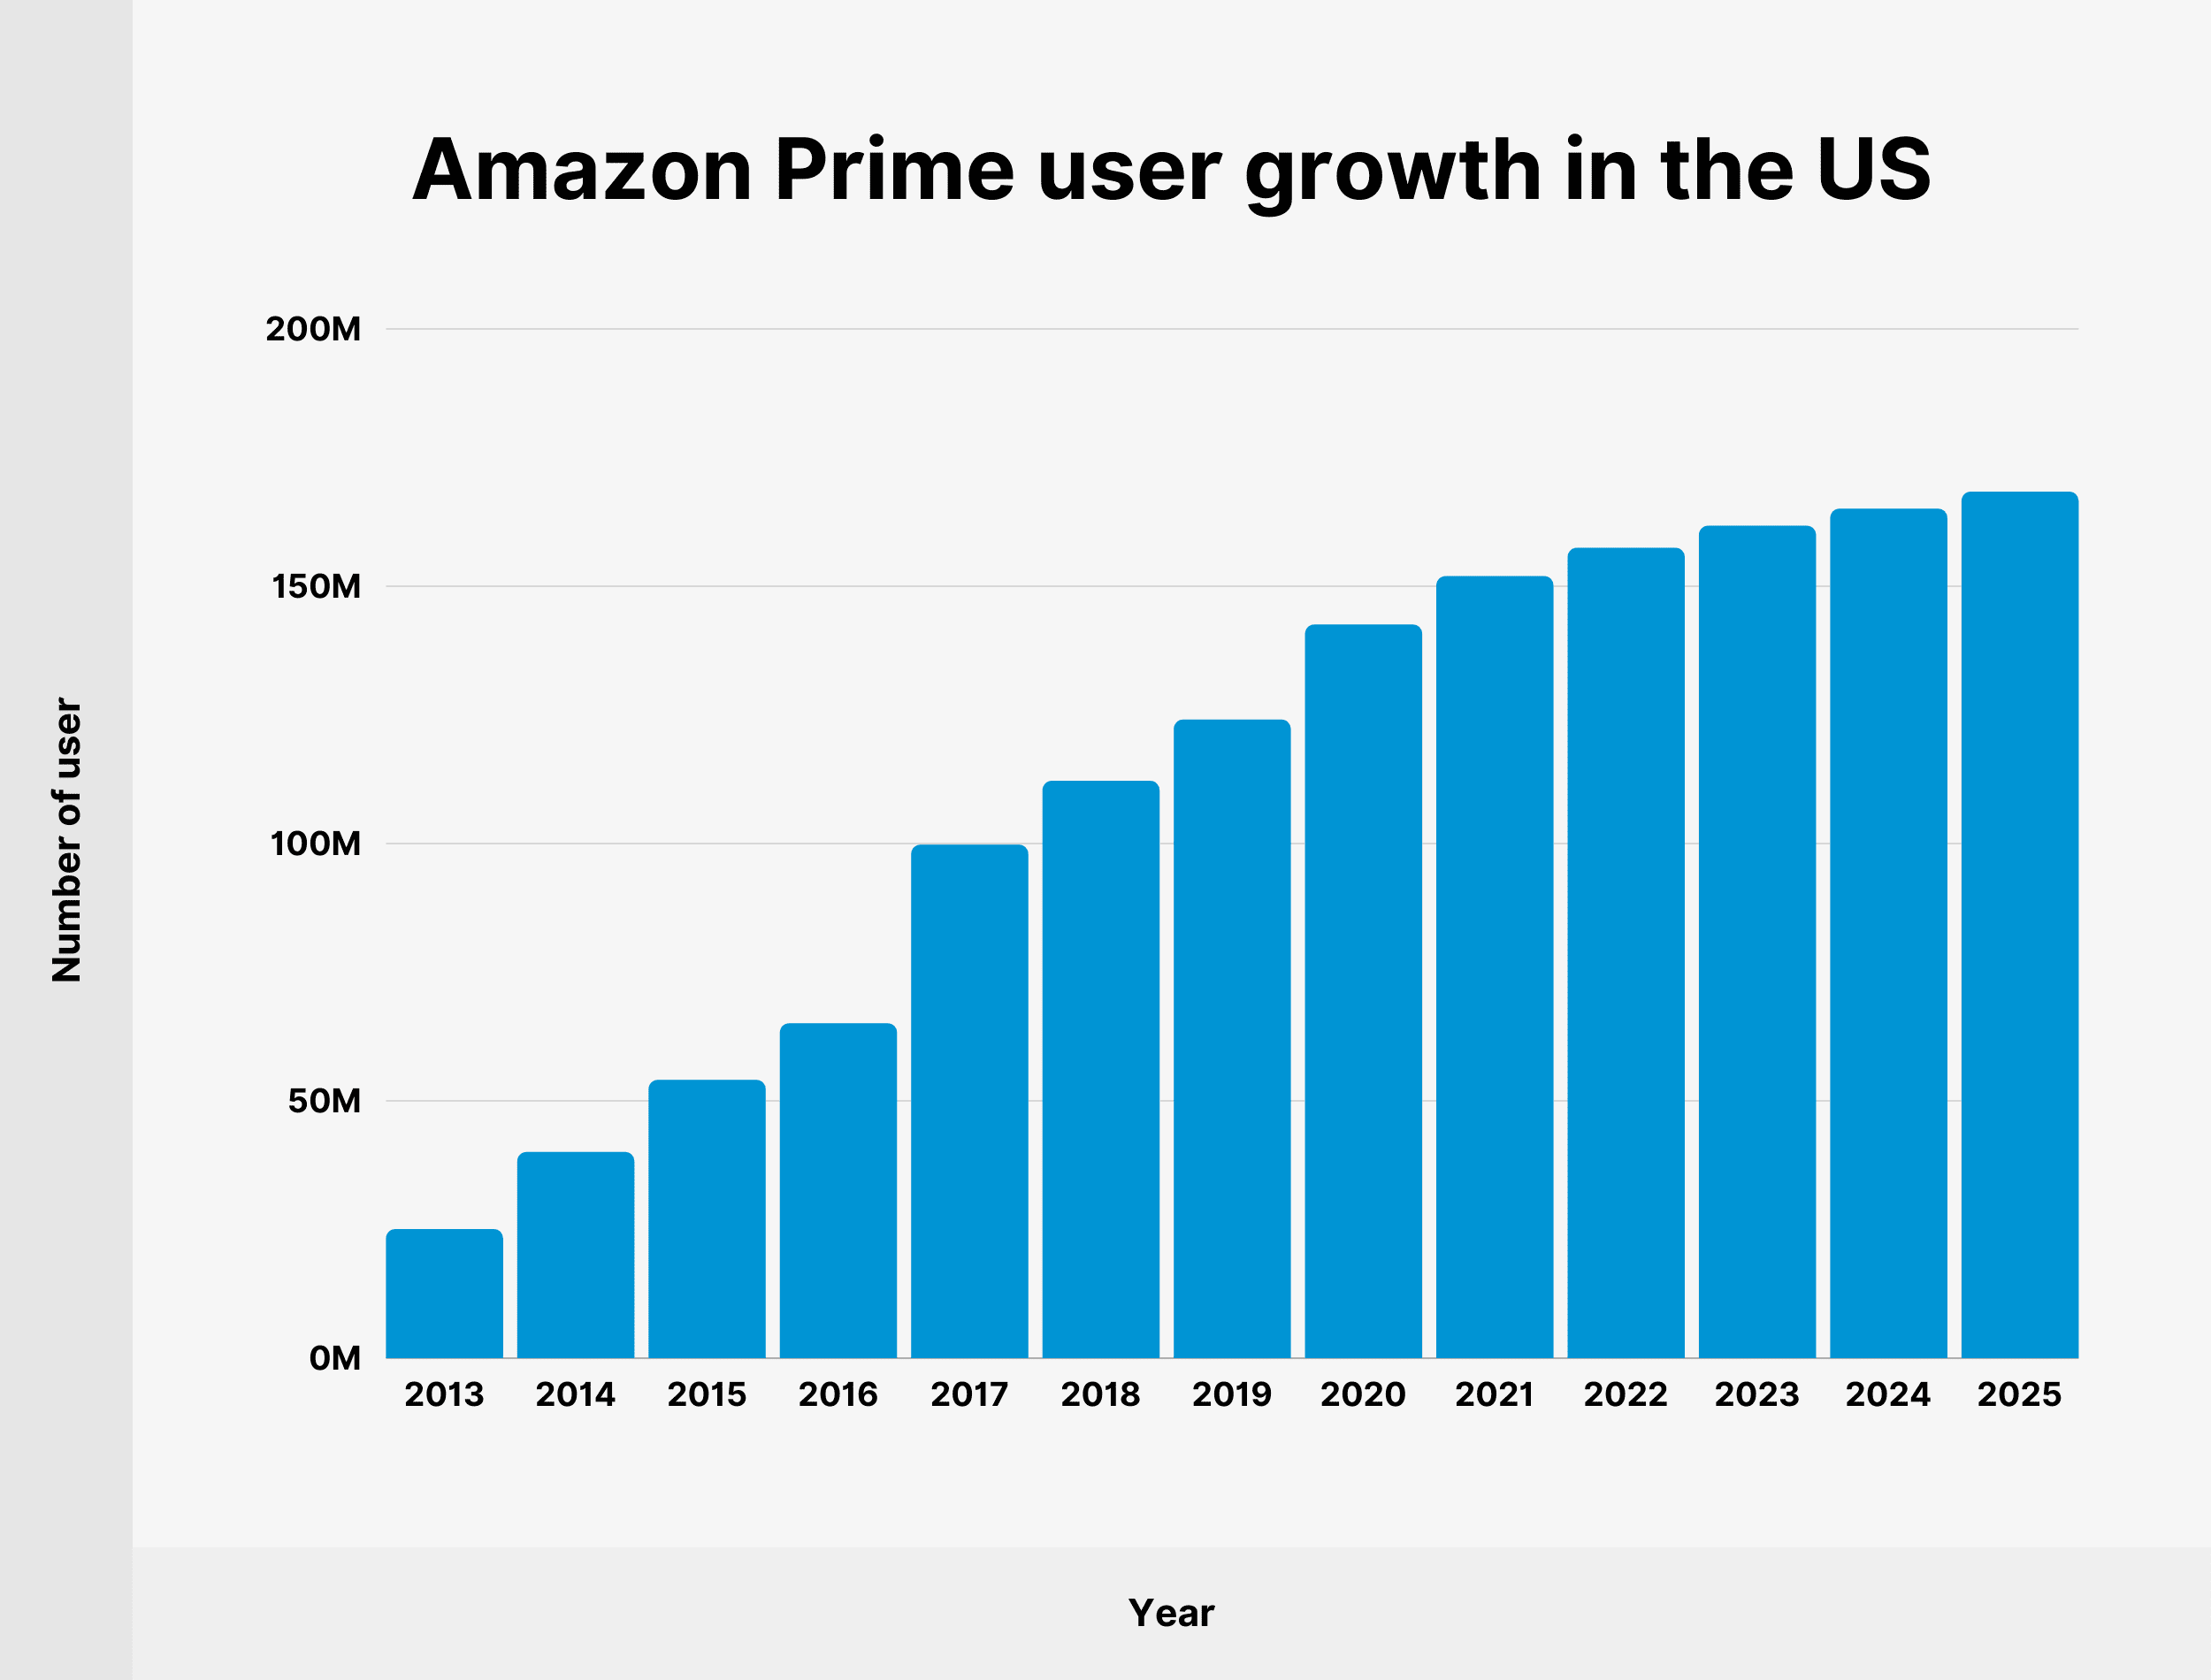 Amazon Prime user growth in the US